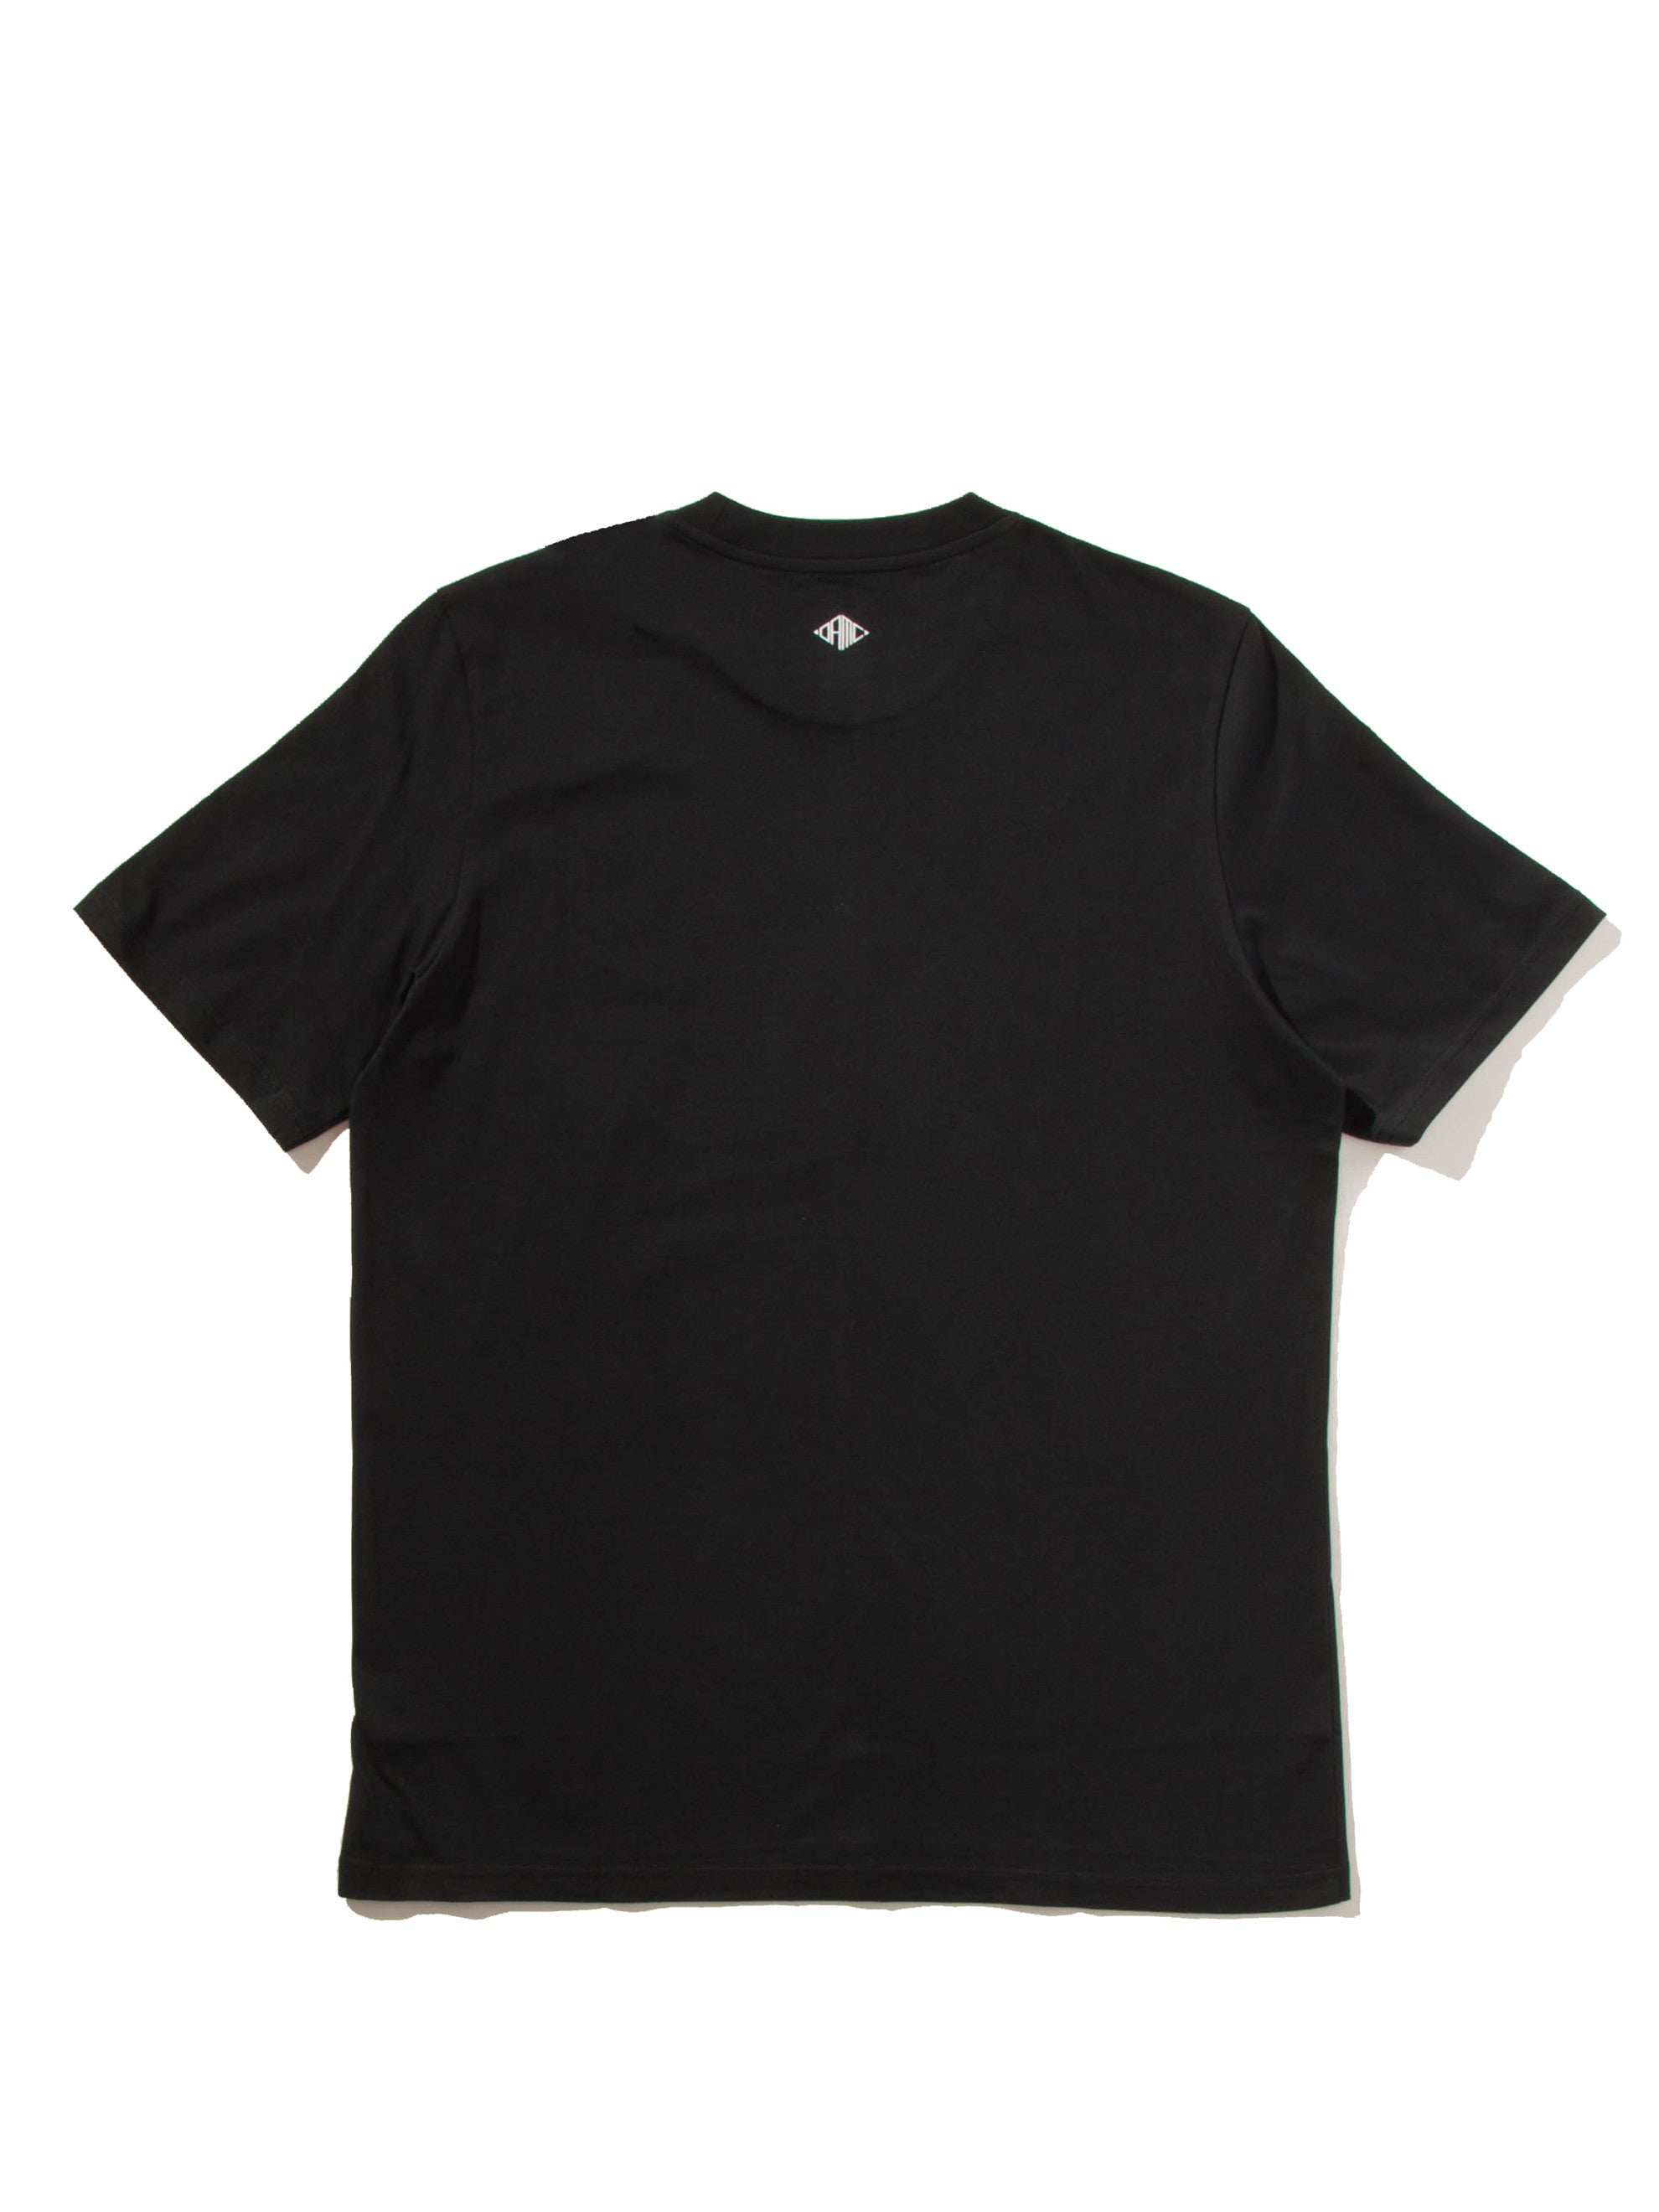 Black Still Life T-Shirt 11